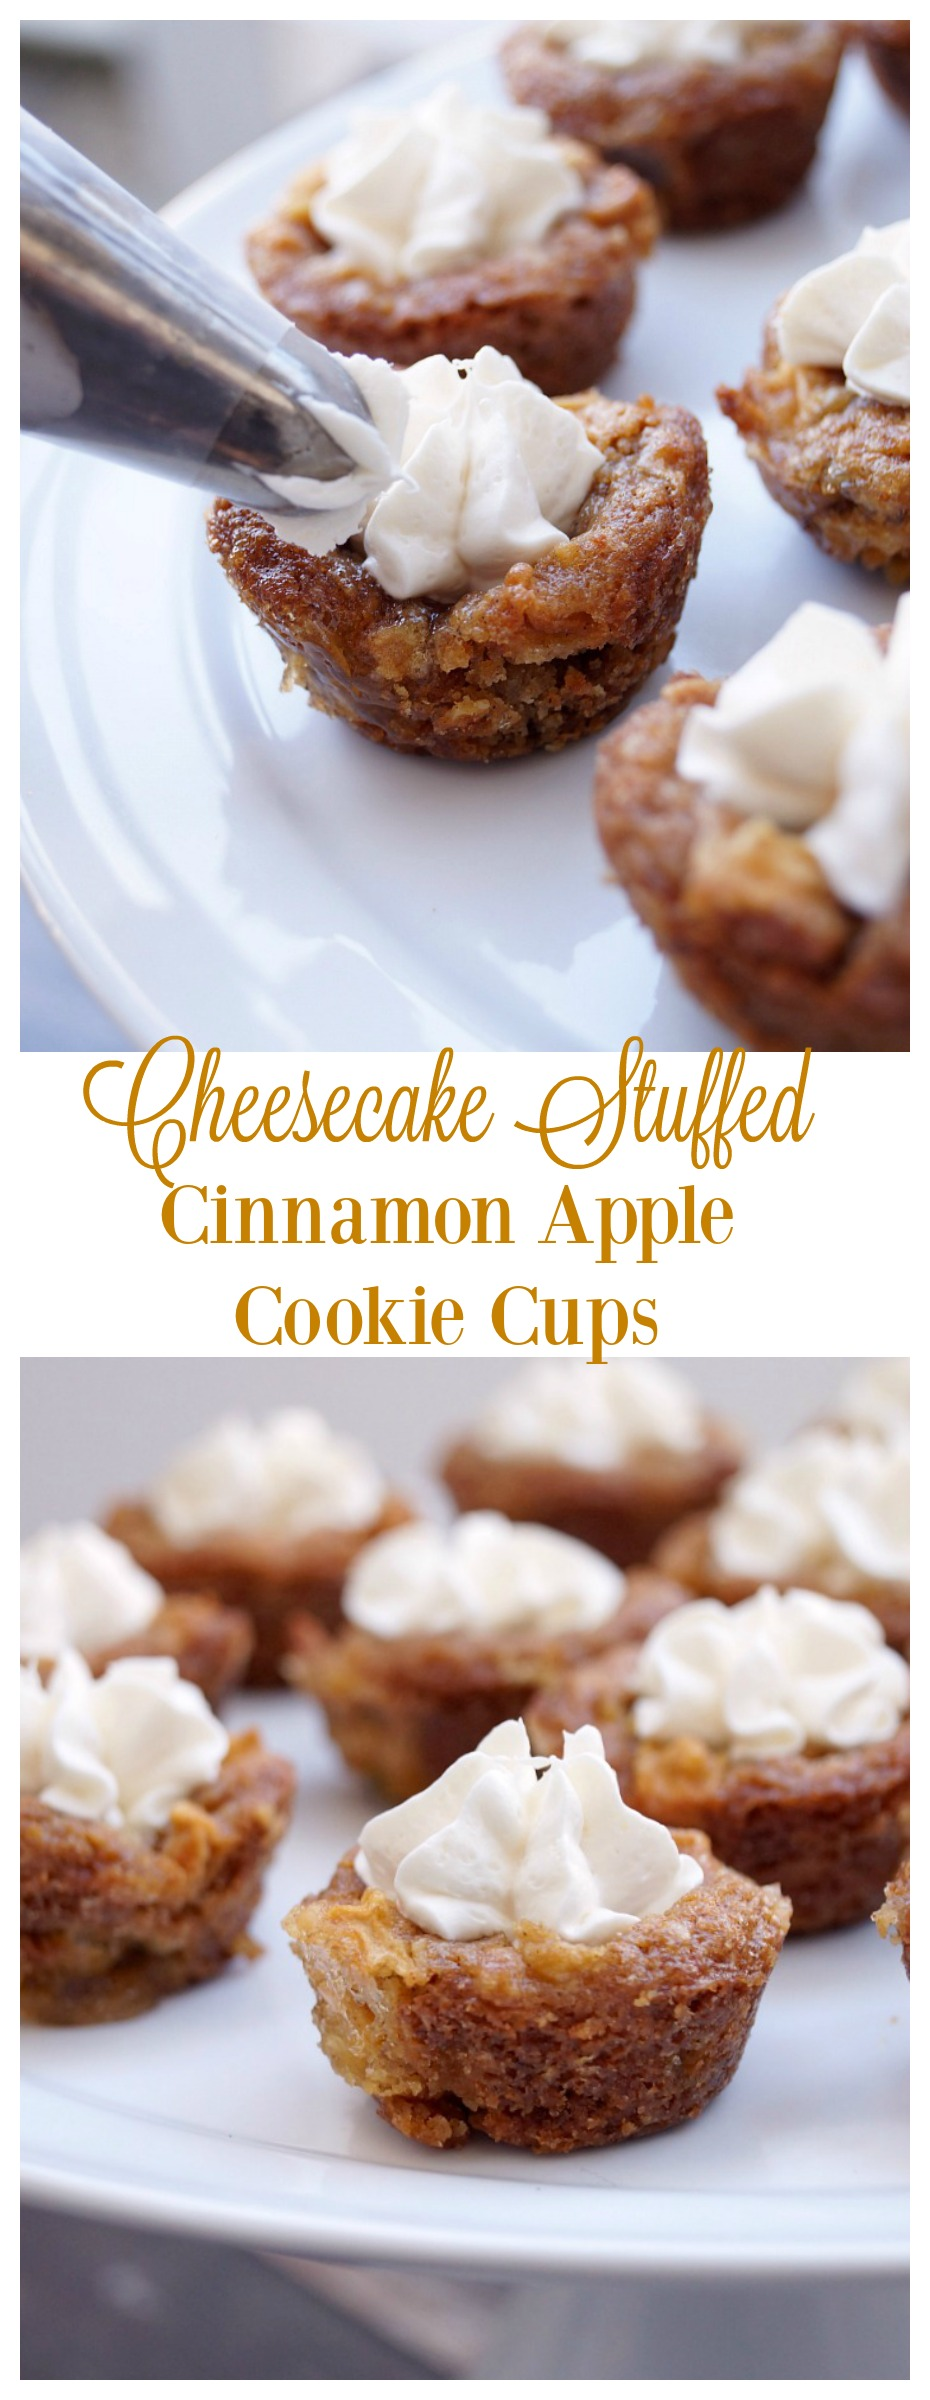 Cheesecake Stuffed Cinnamon Apple Cookie Cups [ad] #nestleholidaybaking @verybestbaking